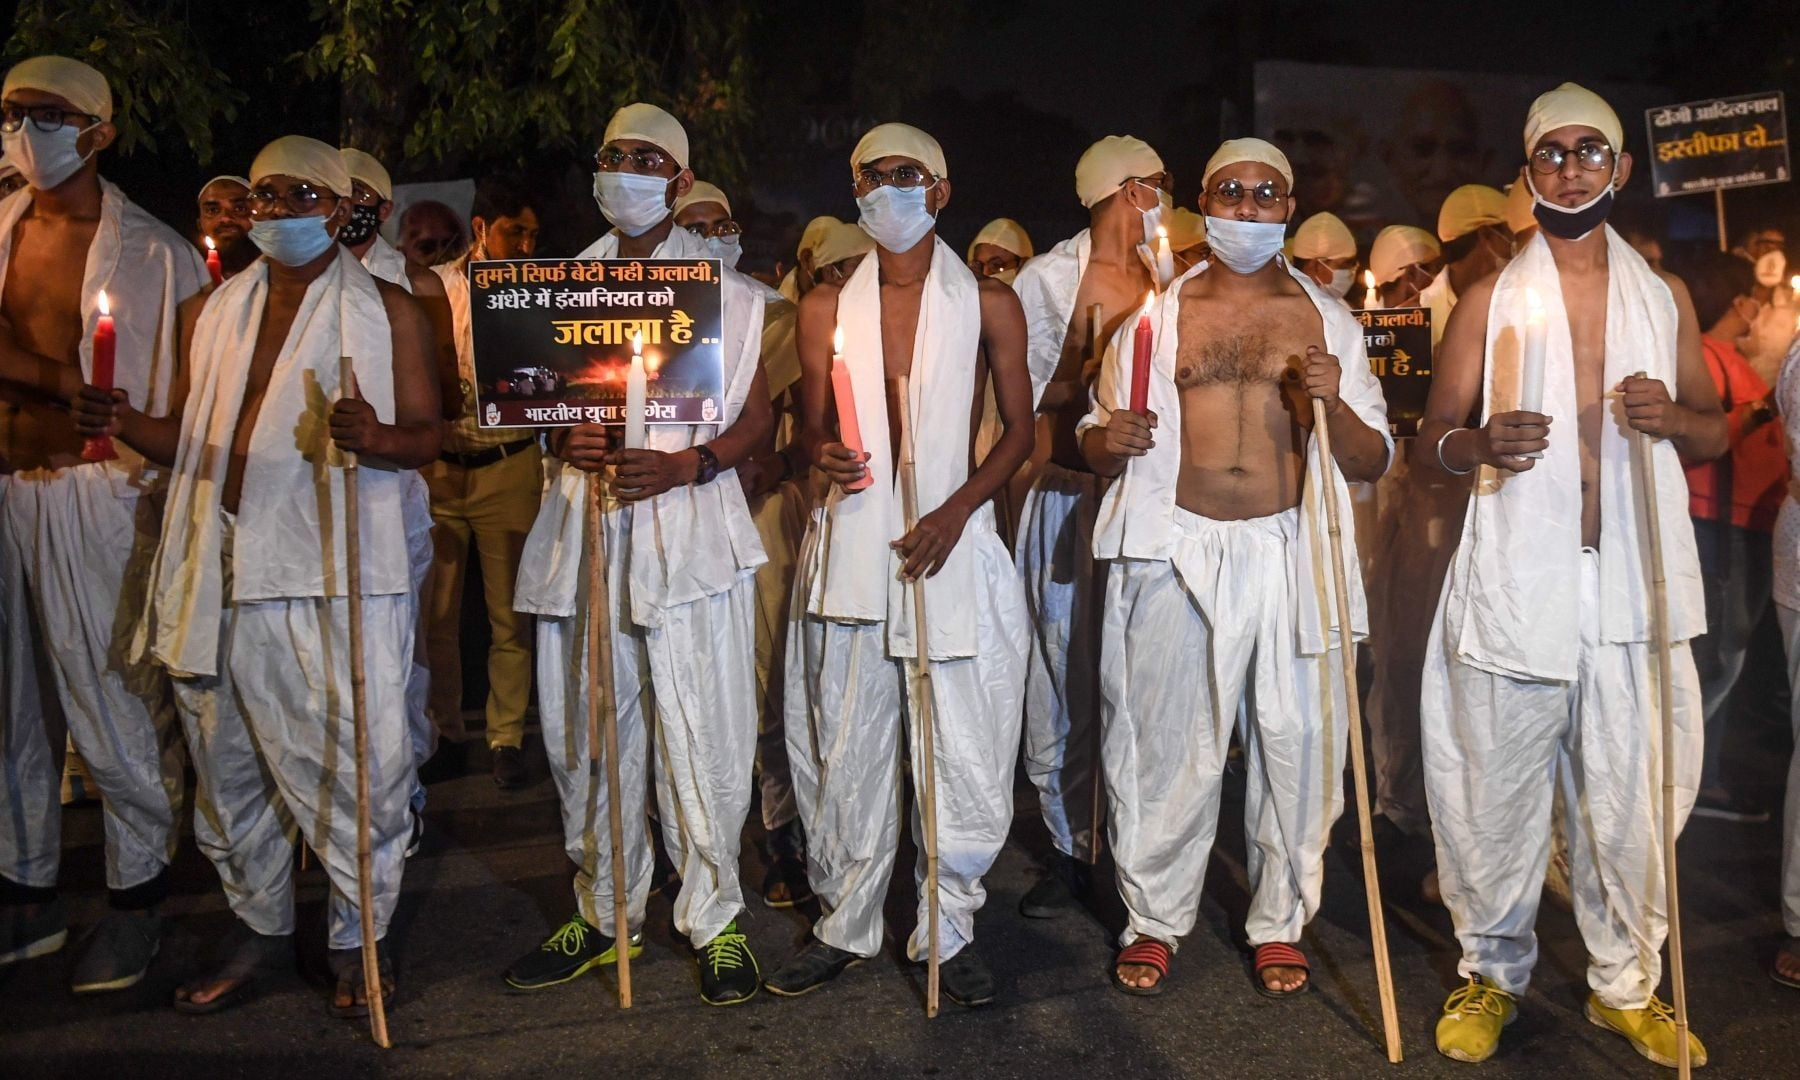 Activists of Indian Youth Congress, dressed as Mahatma Gandhi on the occasion of his birth anniversary marked as the 'Gandhi Jayanti' day, attend a candle march protest against the gang-rape of a woman in Uttar Pradesh, in New Delhi on October 2. — AFP